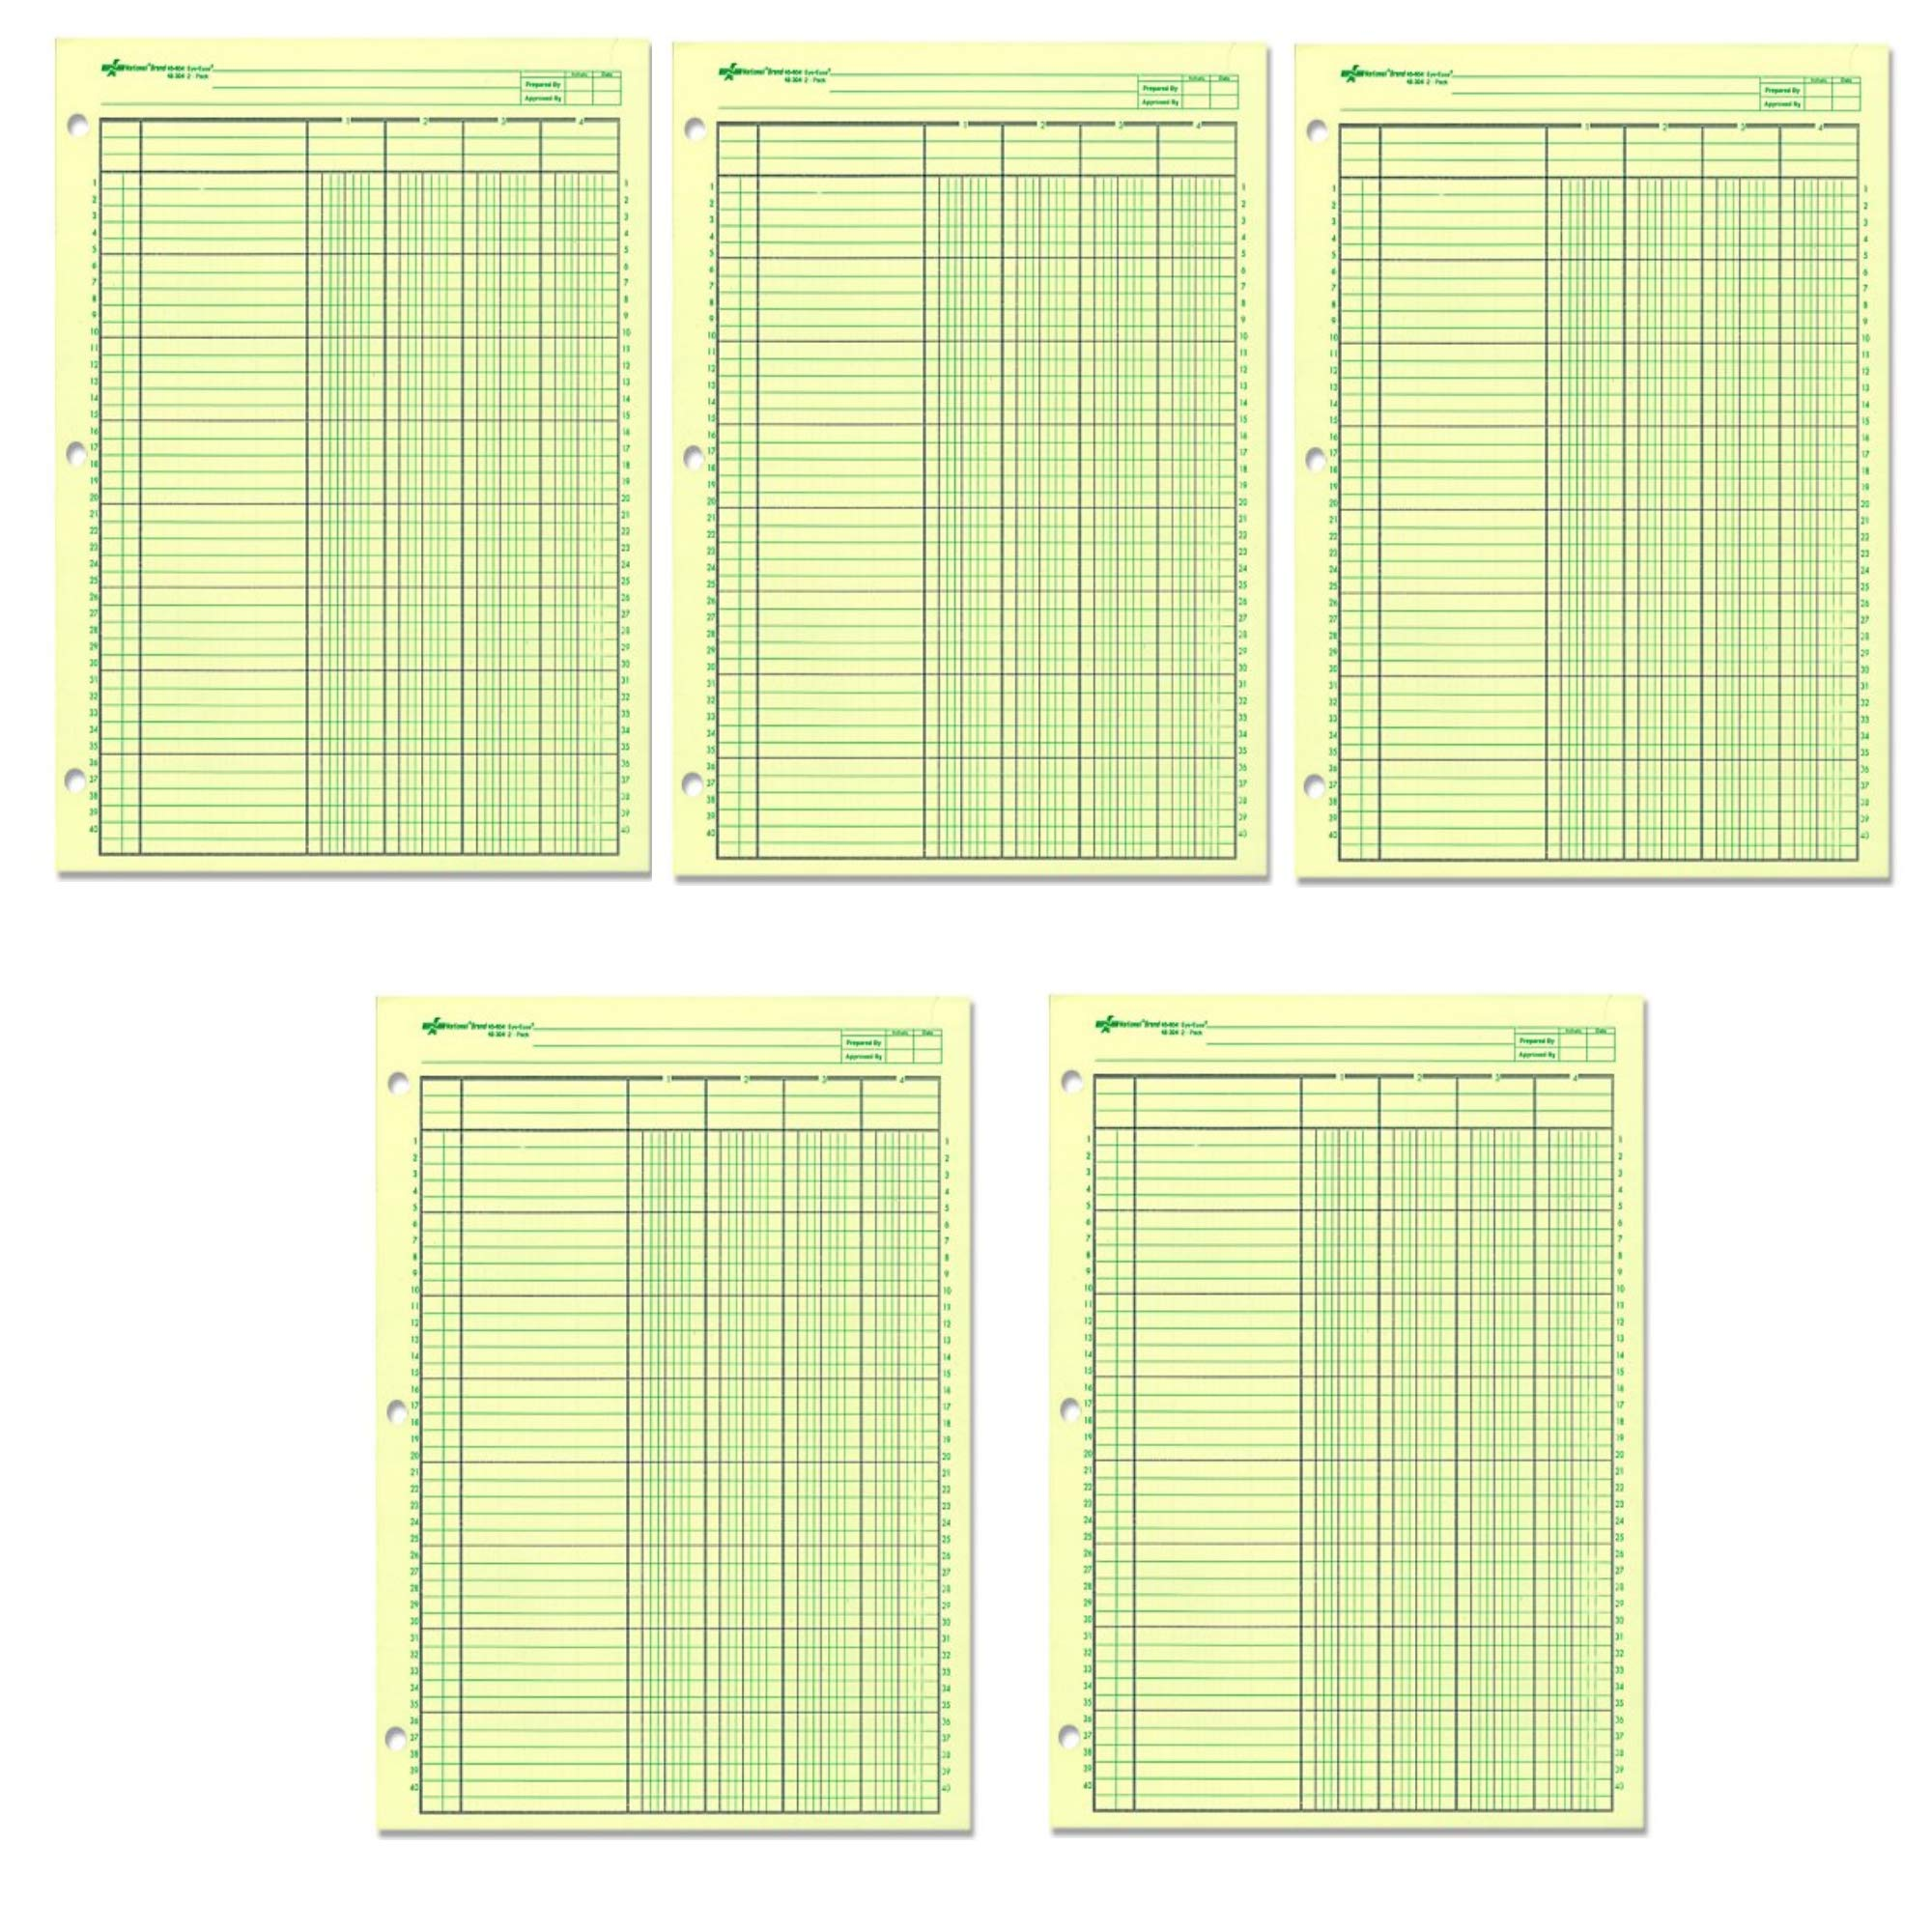 National Analysis Pad, 4 Columns, Green Paper, 11 x 8.5'' 50 Sheets (45604), 5 Pack by Rediform